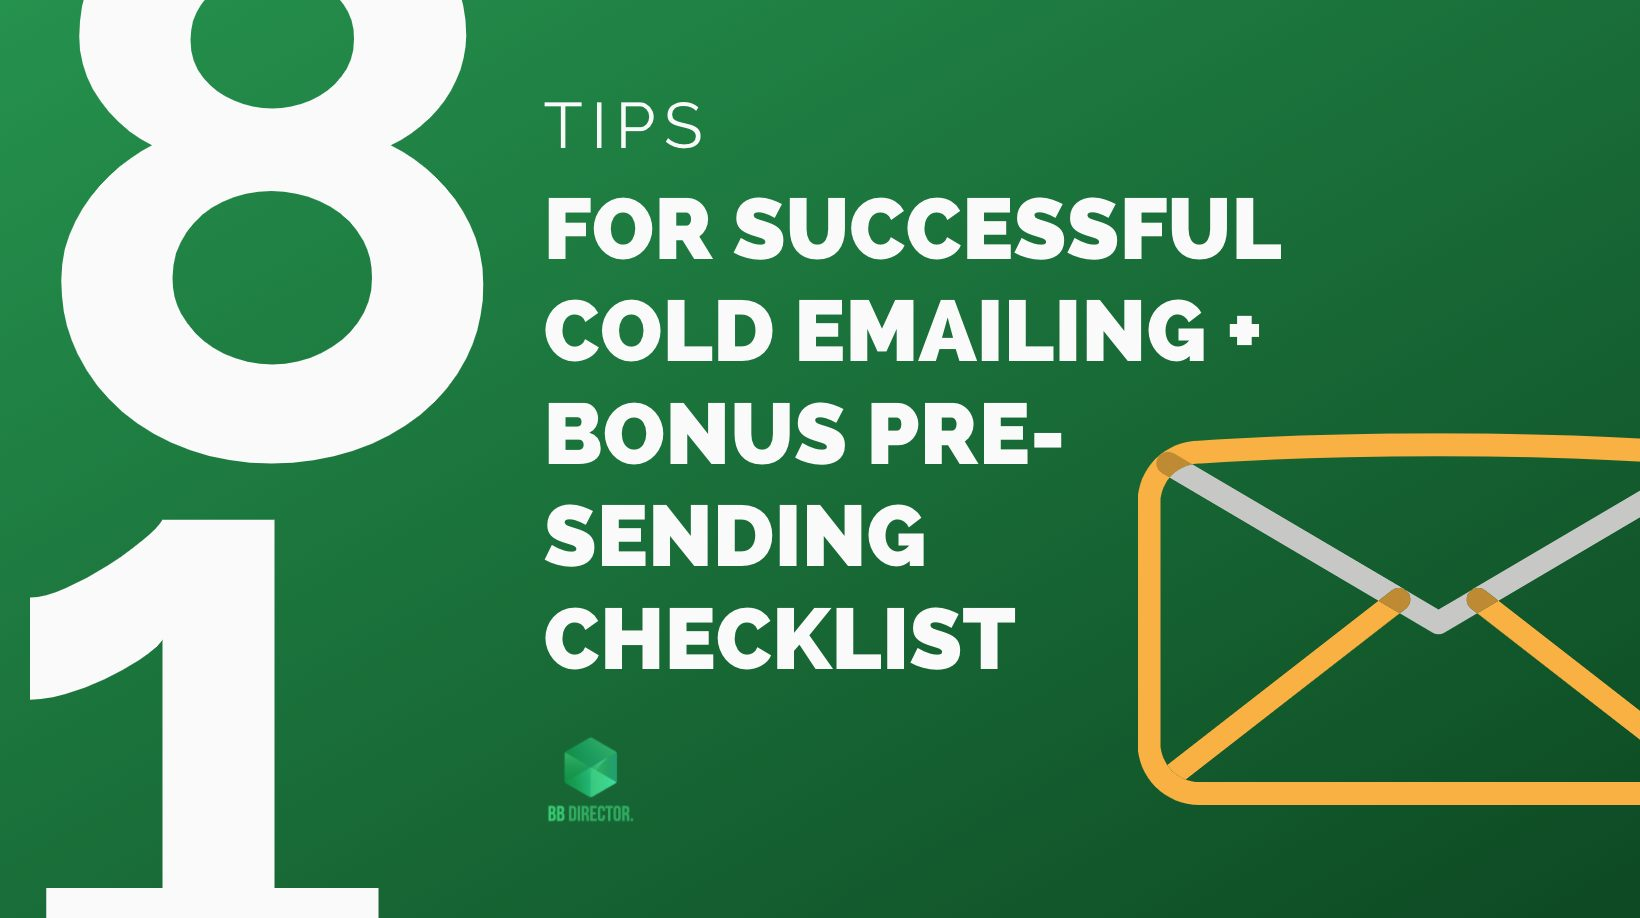 cold emailing tips